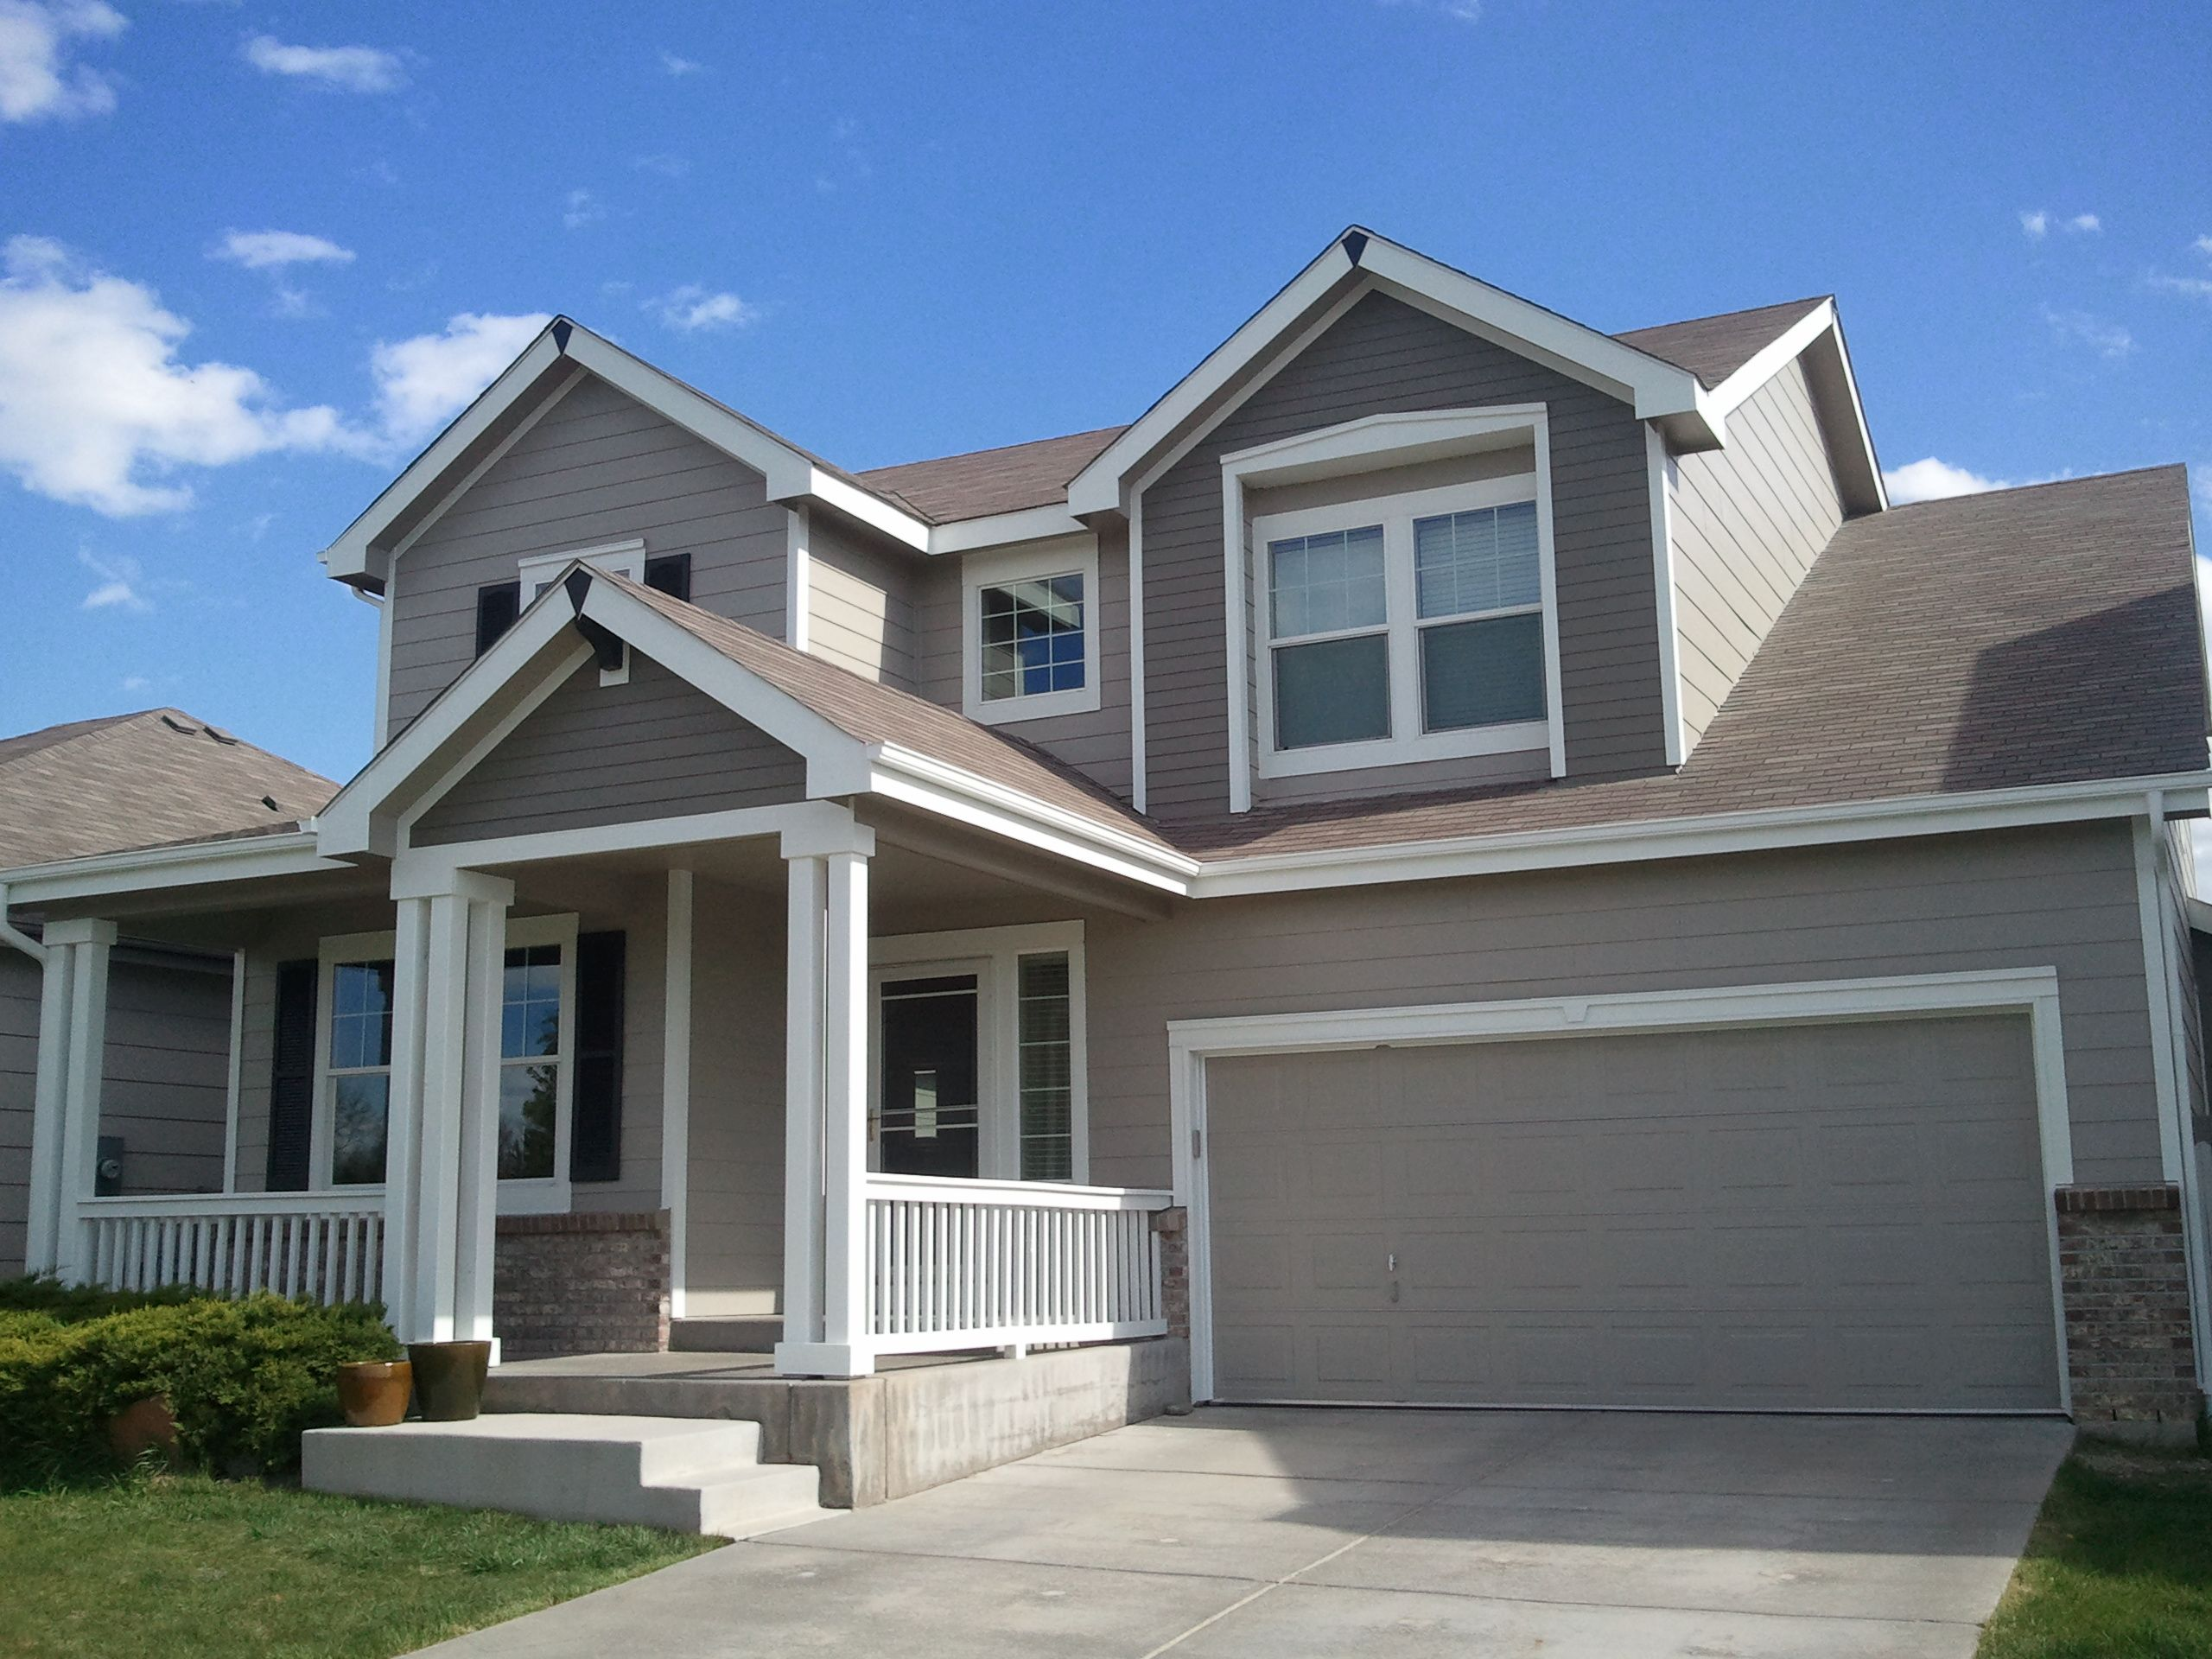 Intellectual gray body super white trim anonymous gray accented popouts caviar accented for Accent colors for gray exterior